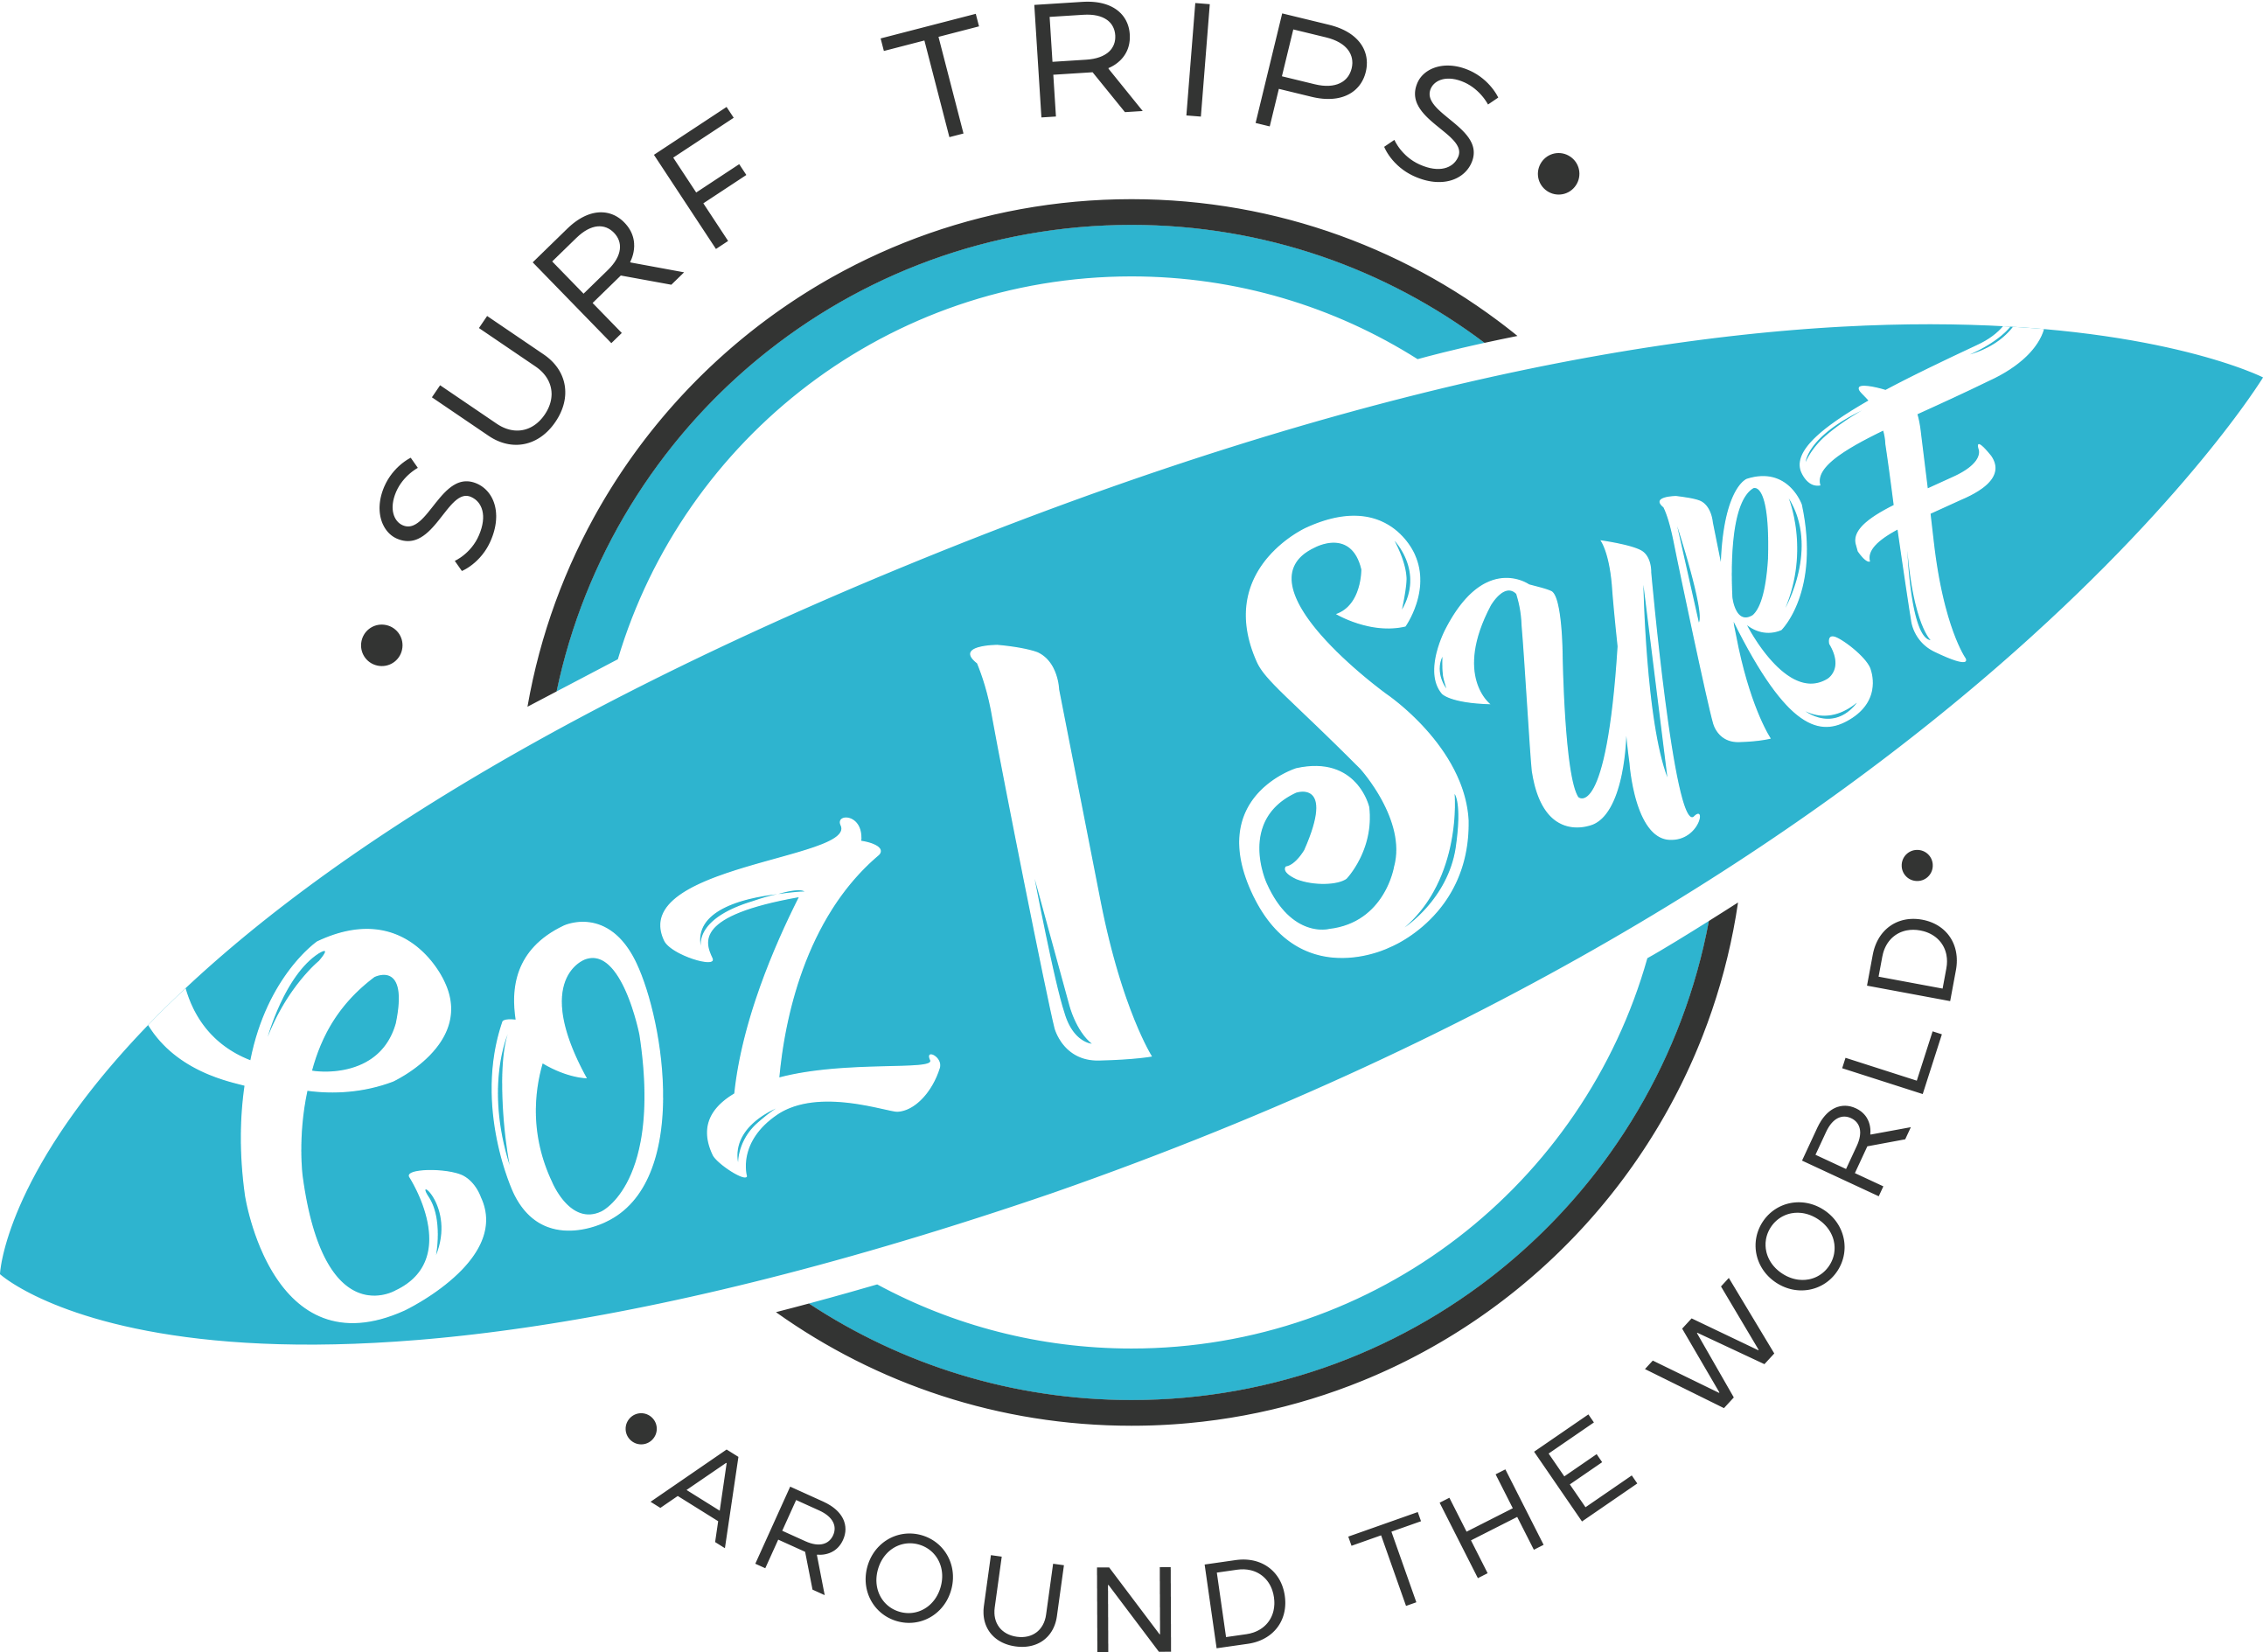 Coz I Surf - Surf trips around the world